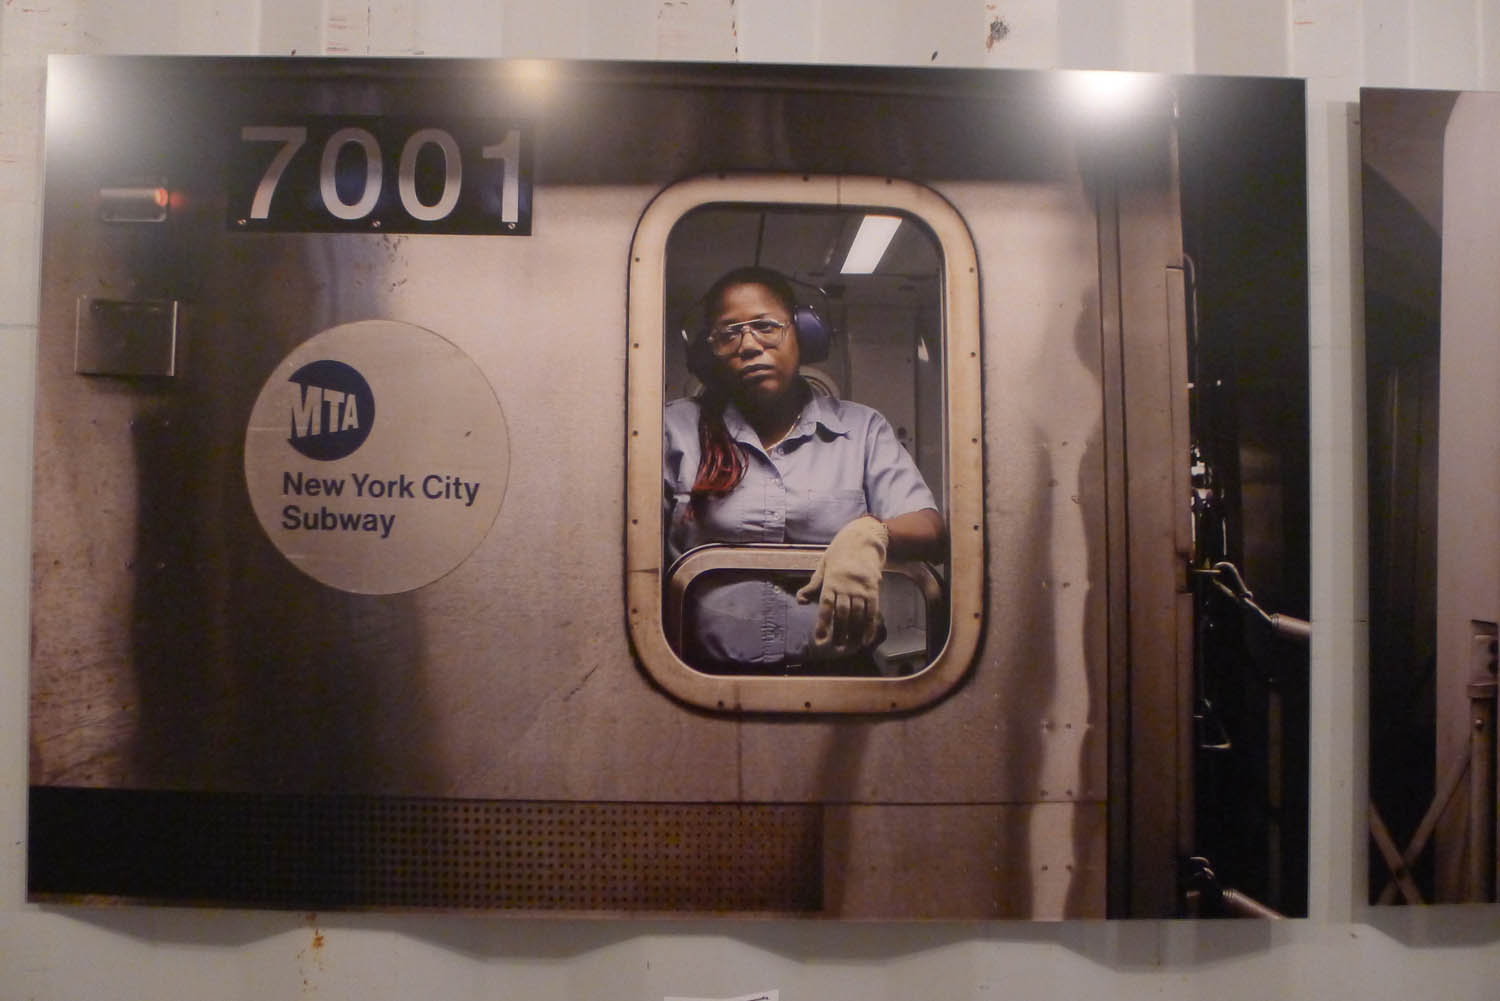 From a series by Janus van den Eijnden about subway drivers